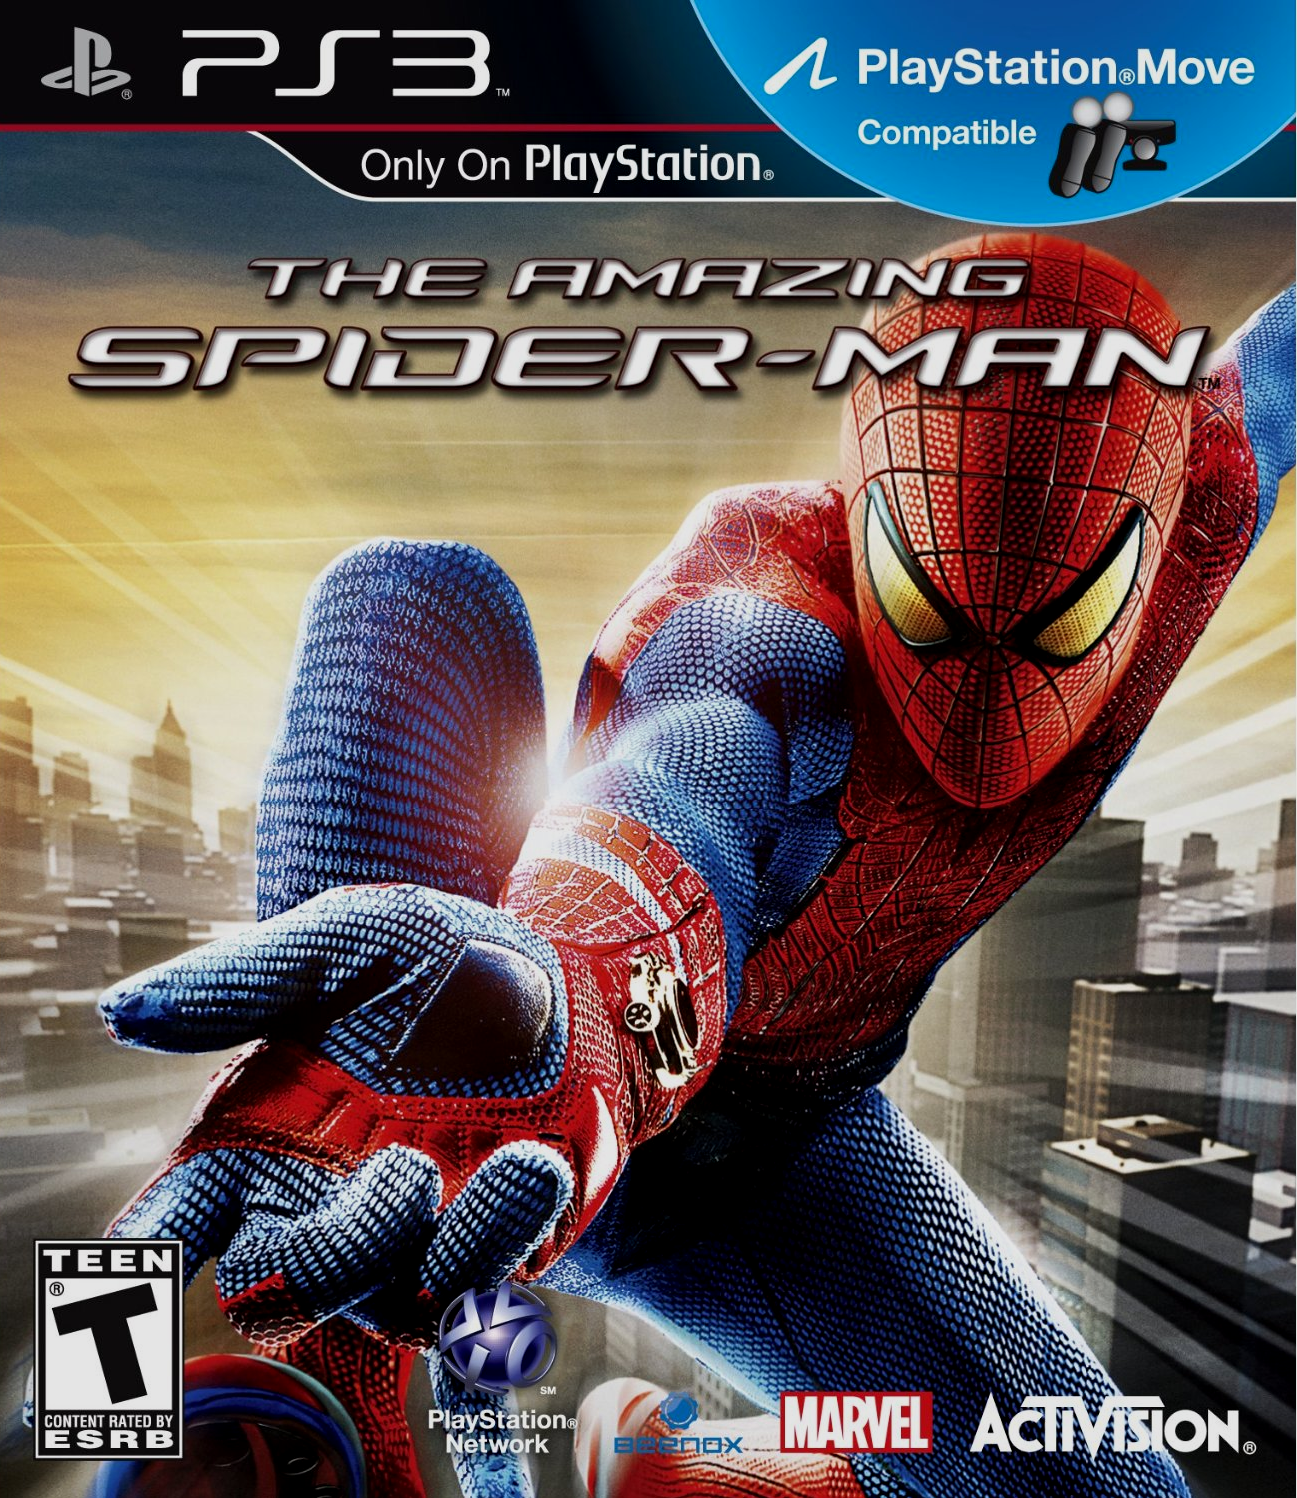 the amazing spider-man (video game) | spider-man films wiki | fandom